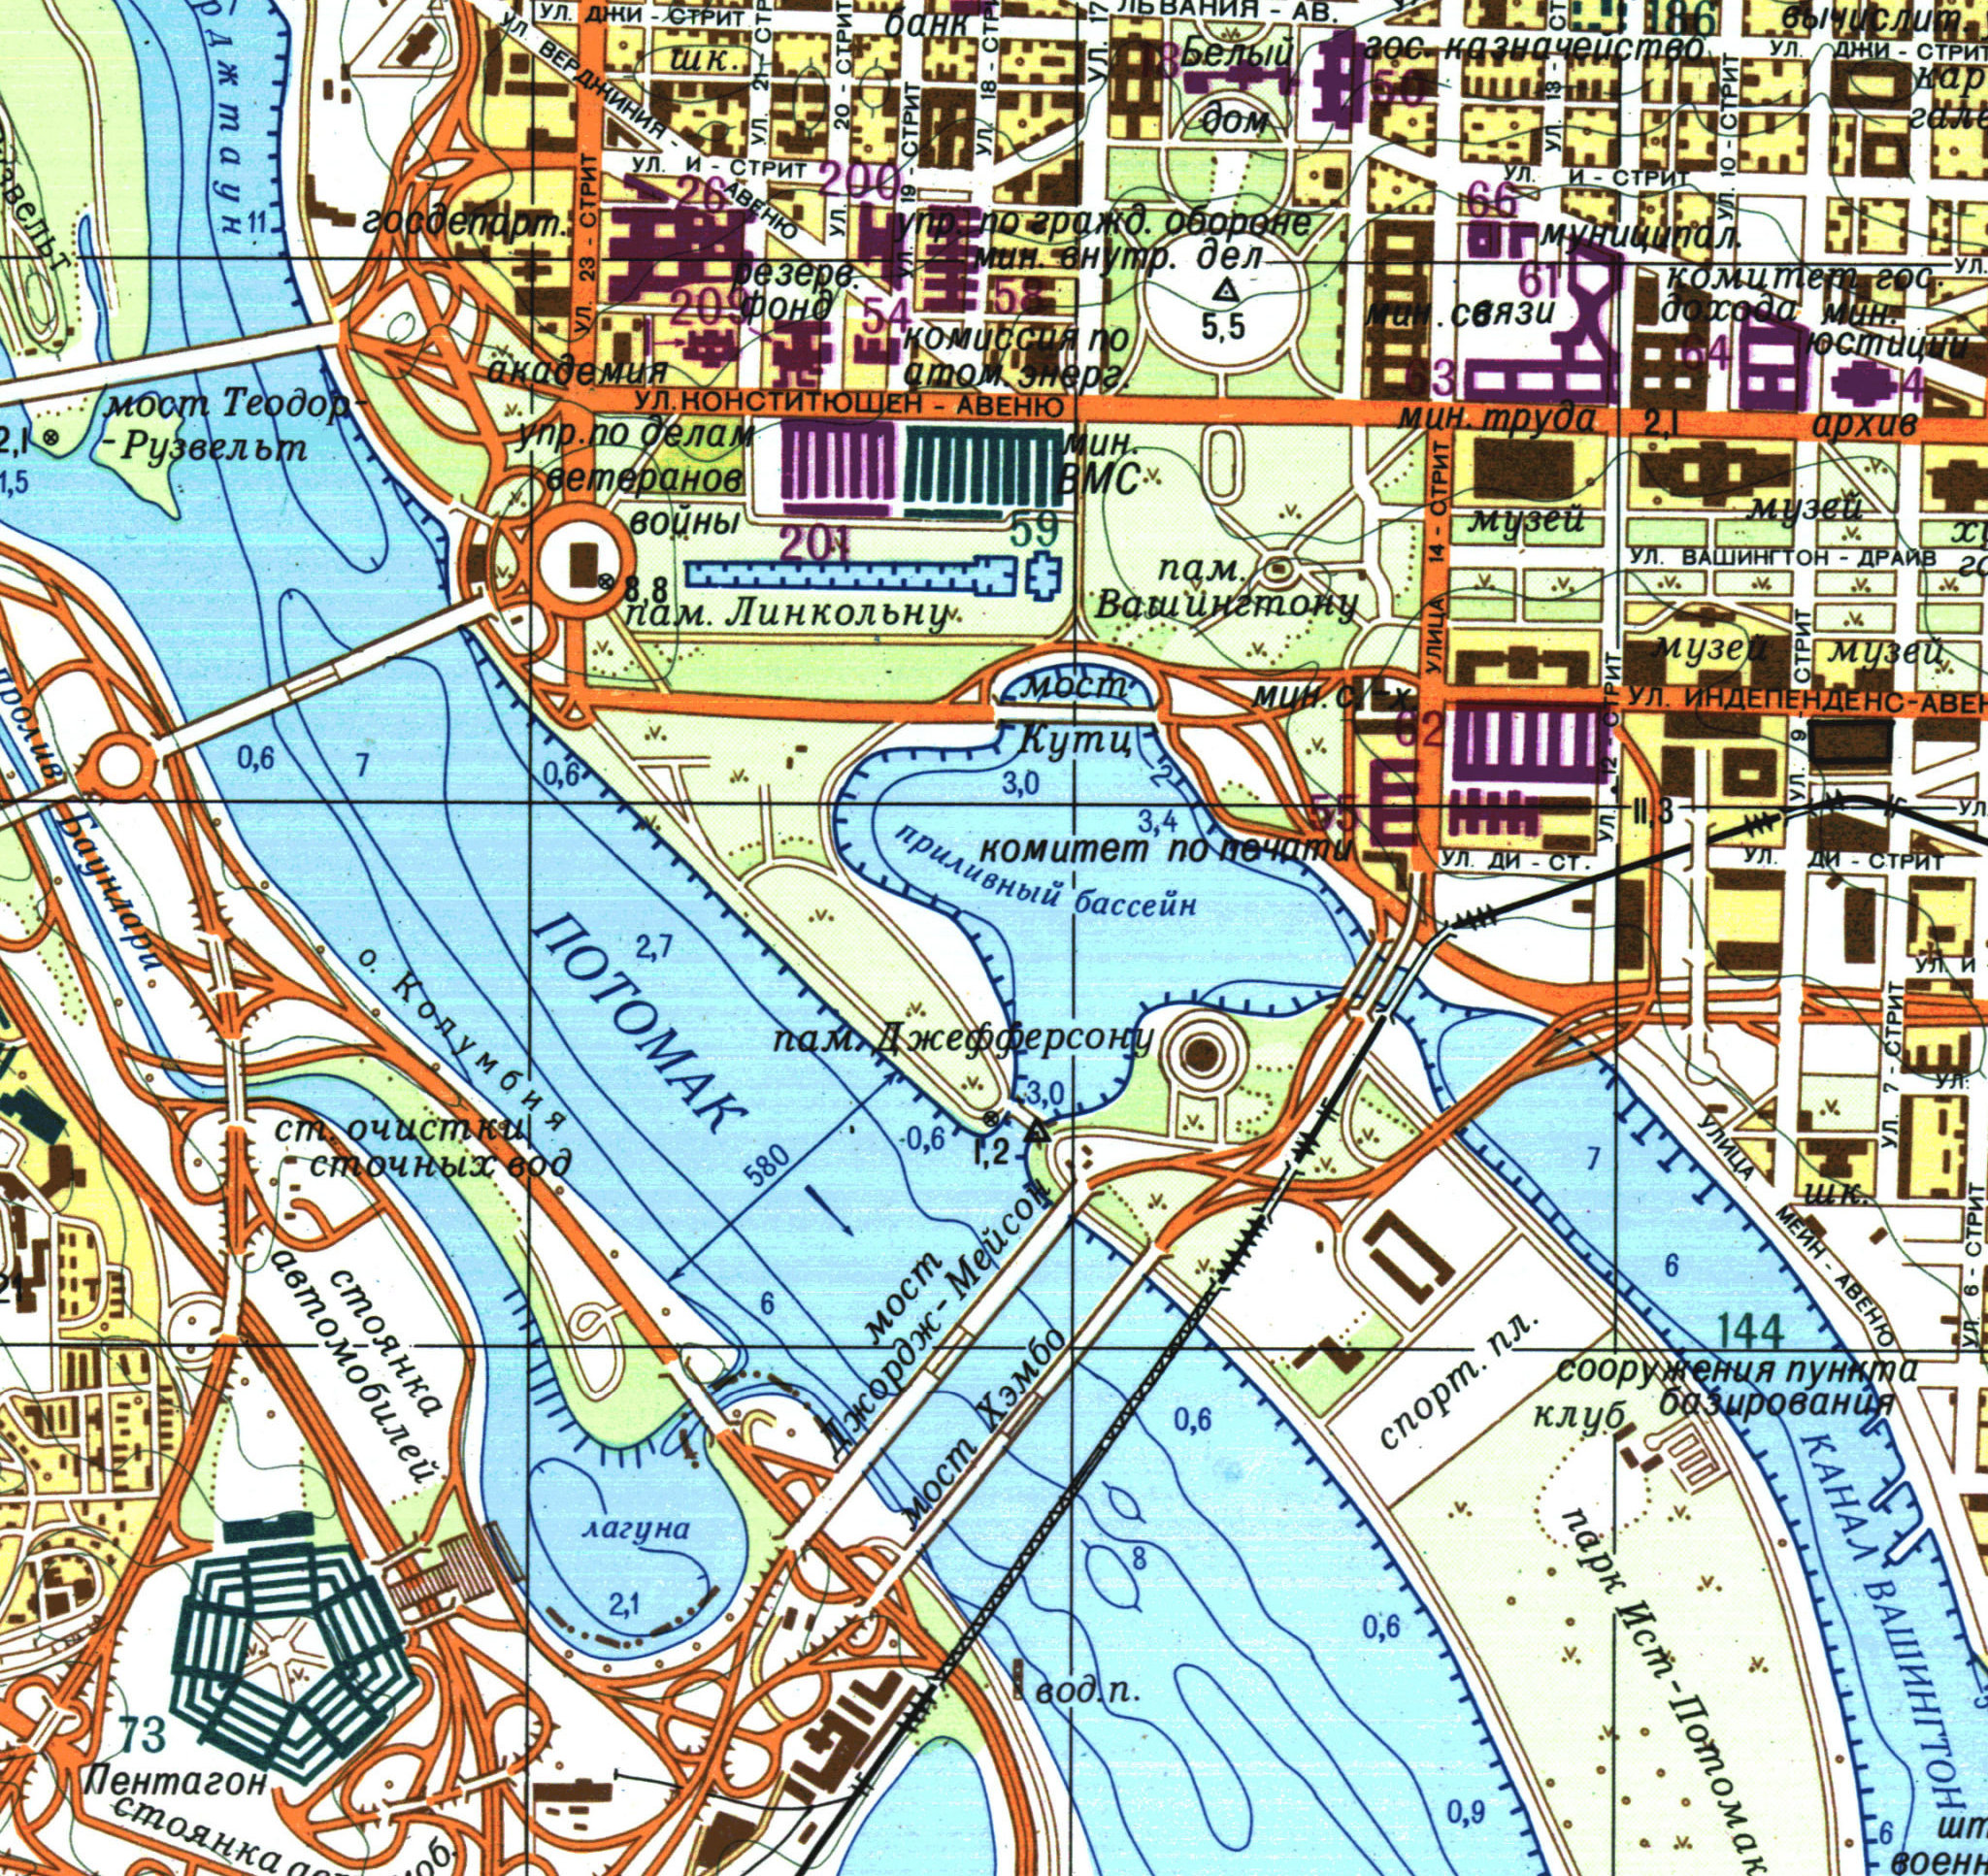 Fragmento do mapa soviético de Washington